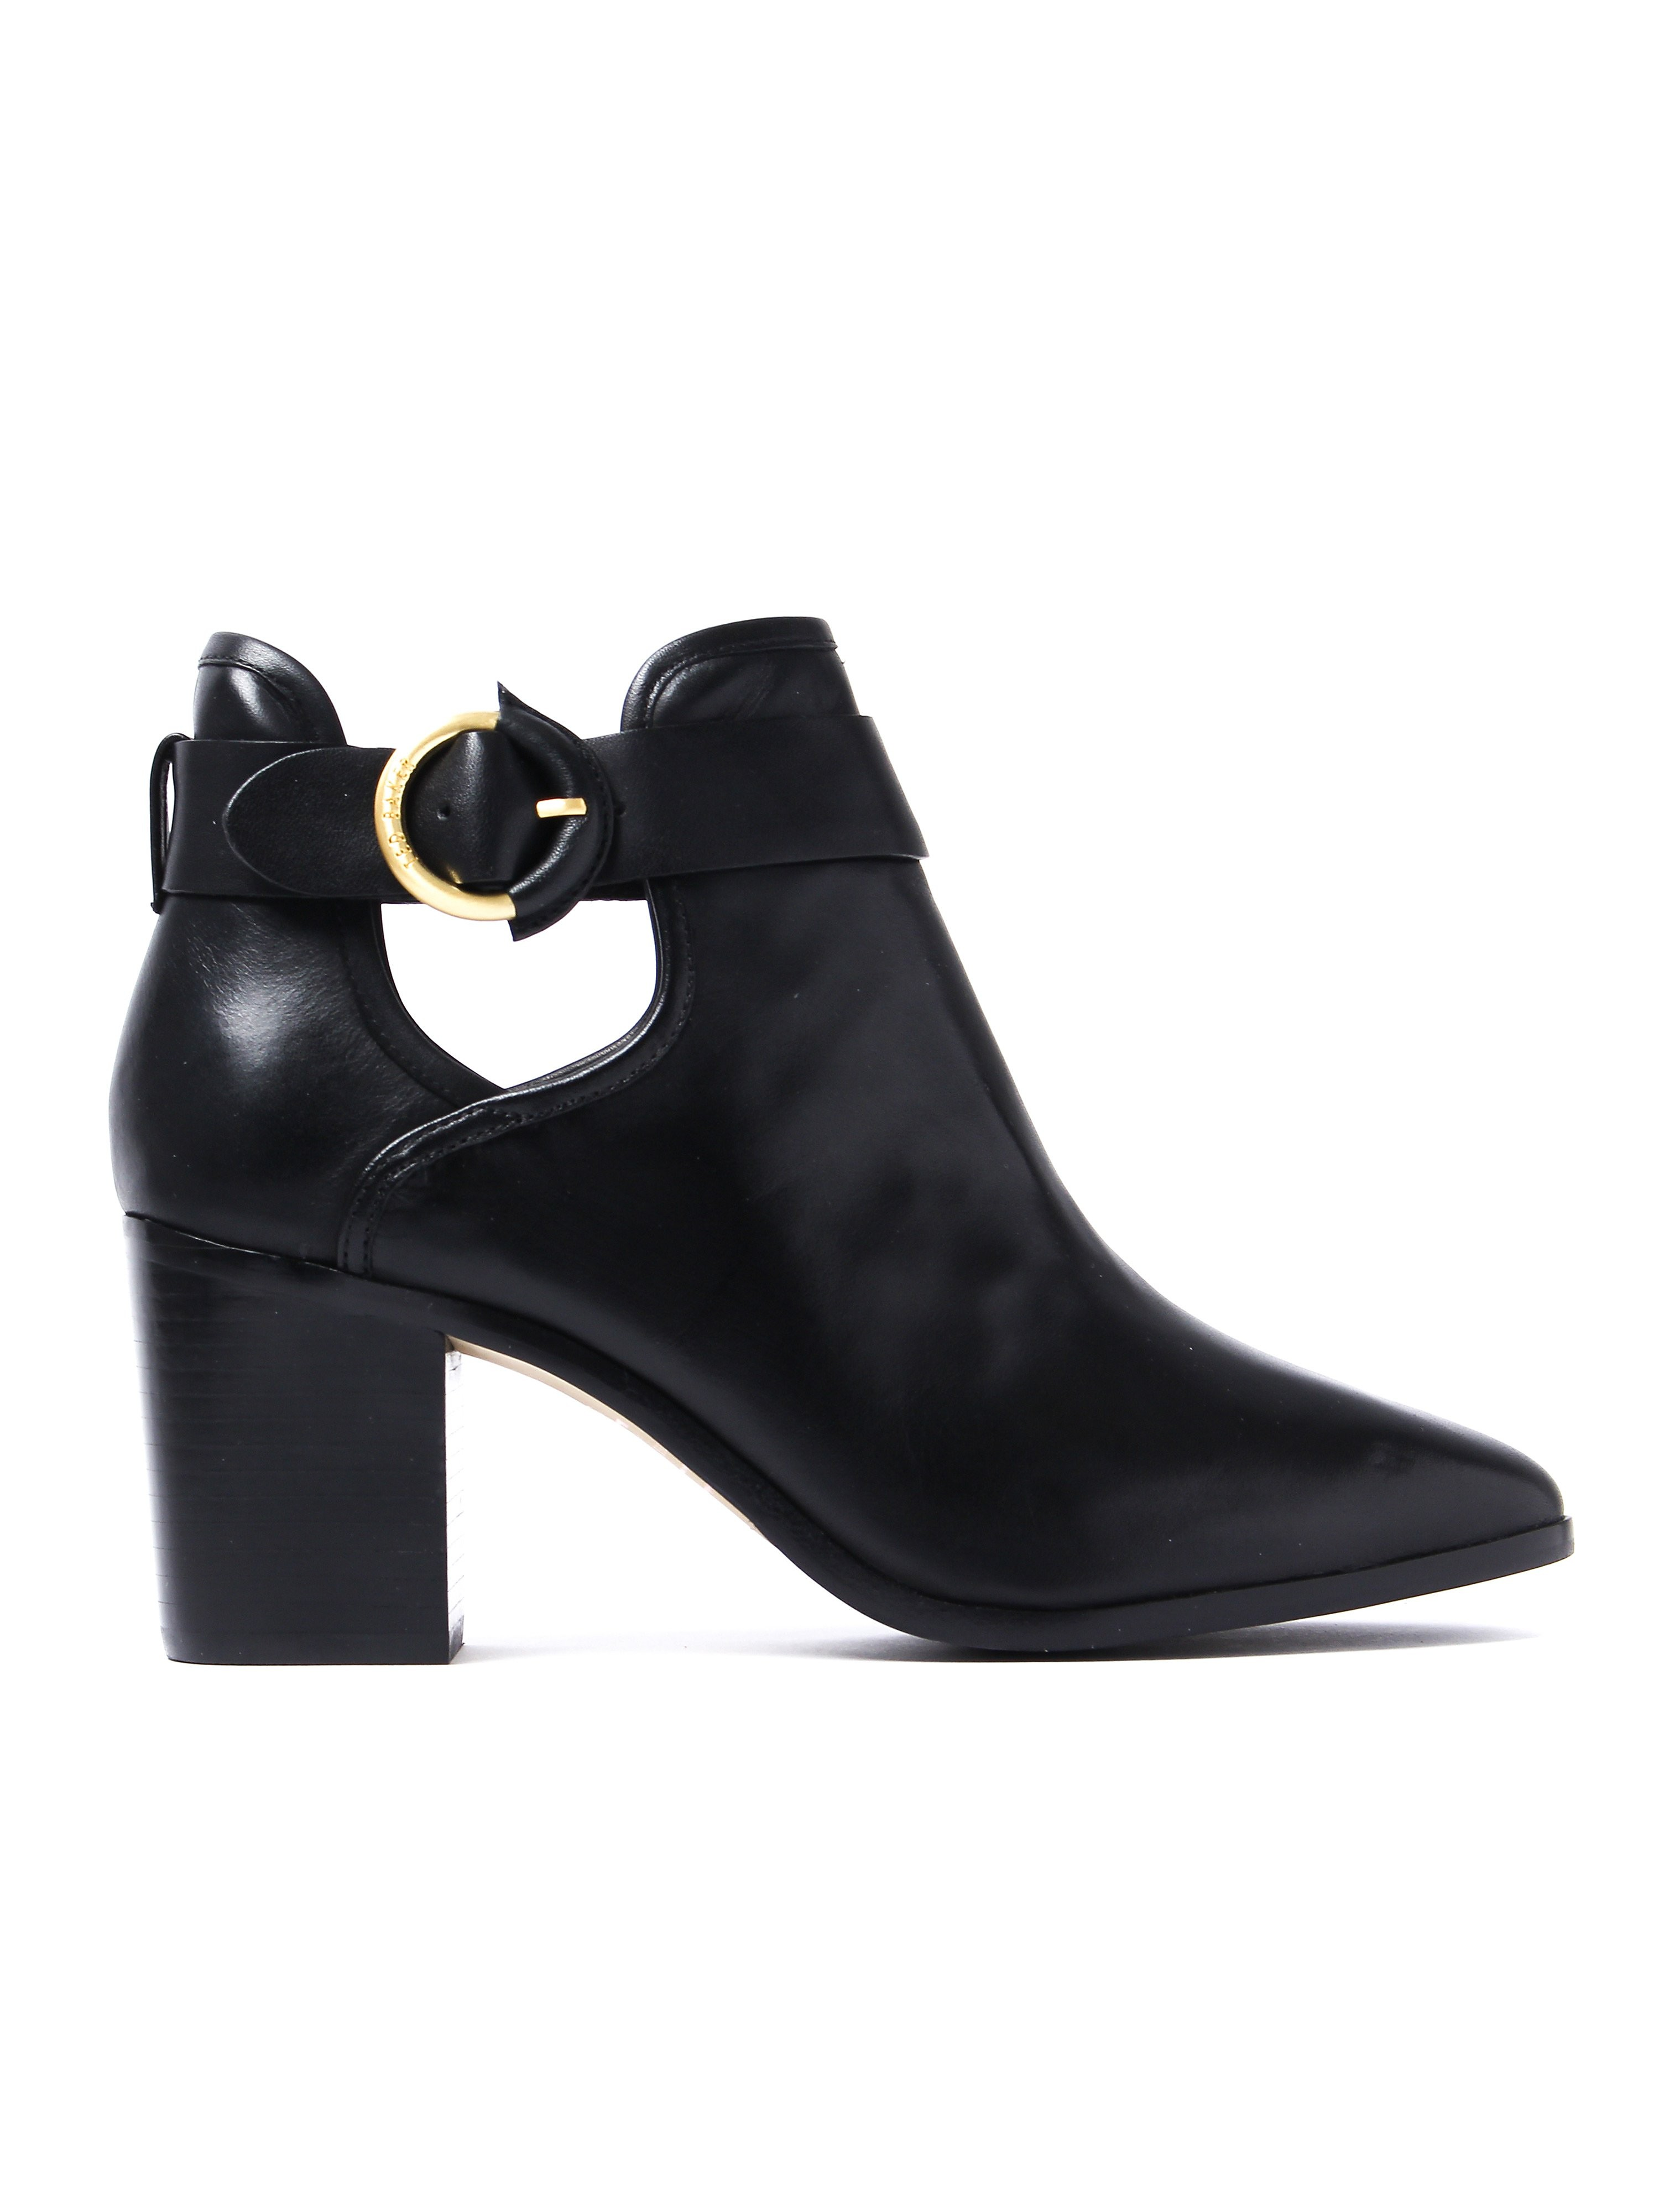 Ted Baker Women's Sybell Ankle Boots - Black Leather